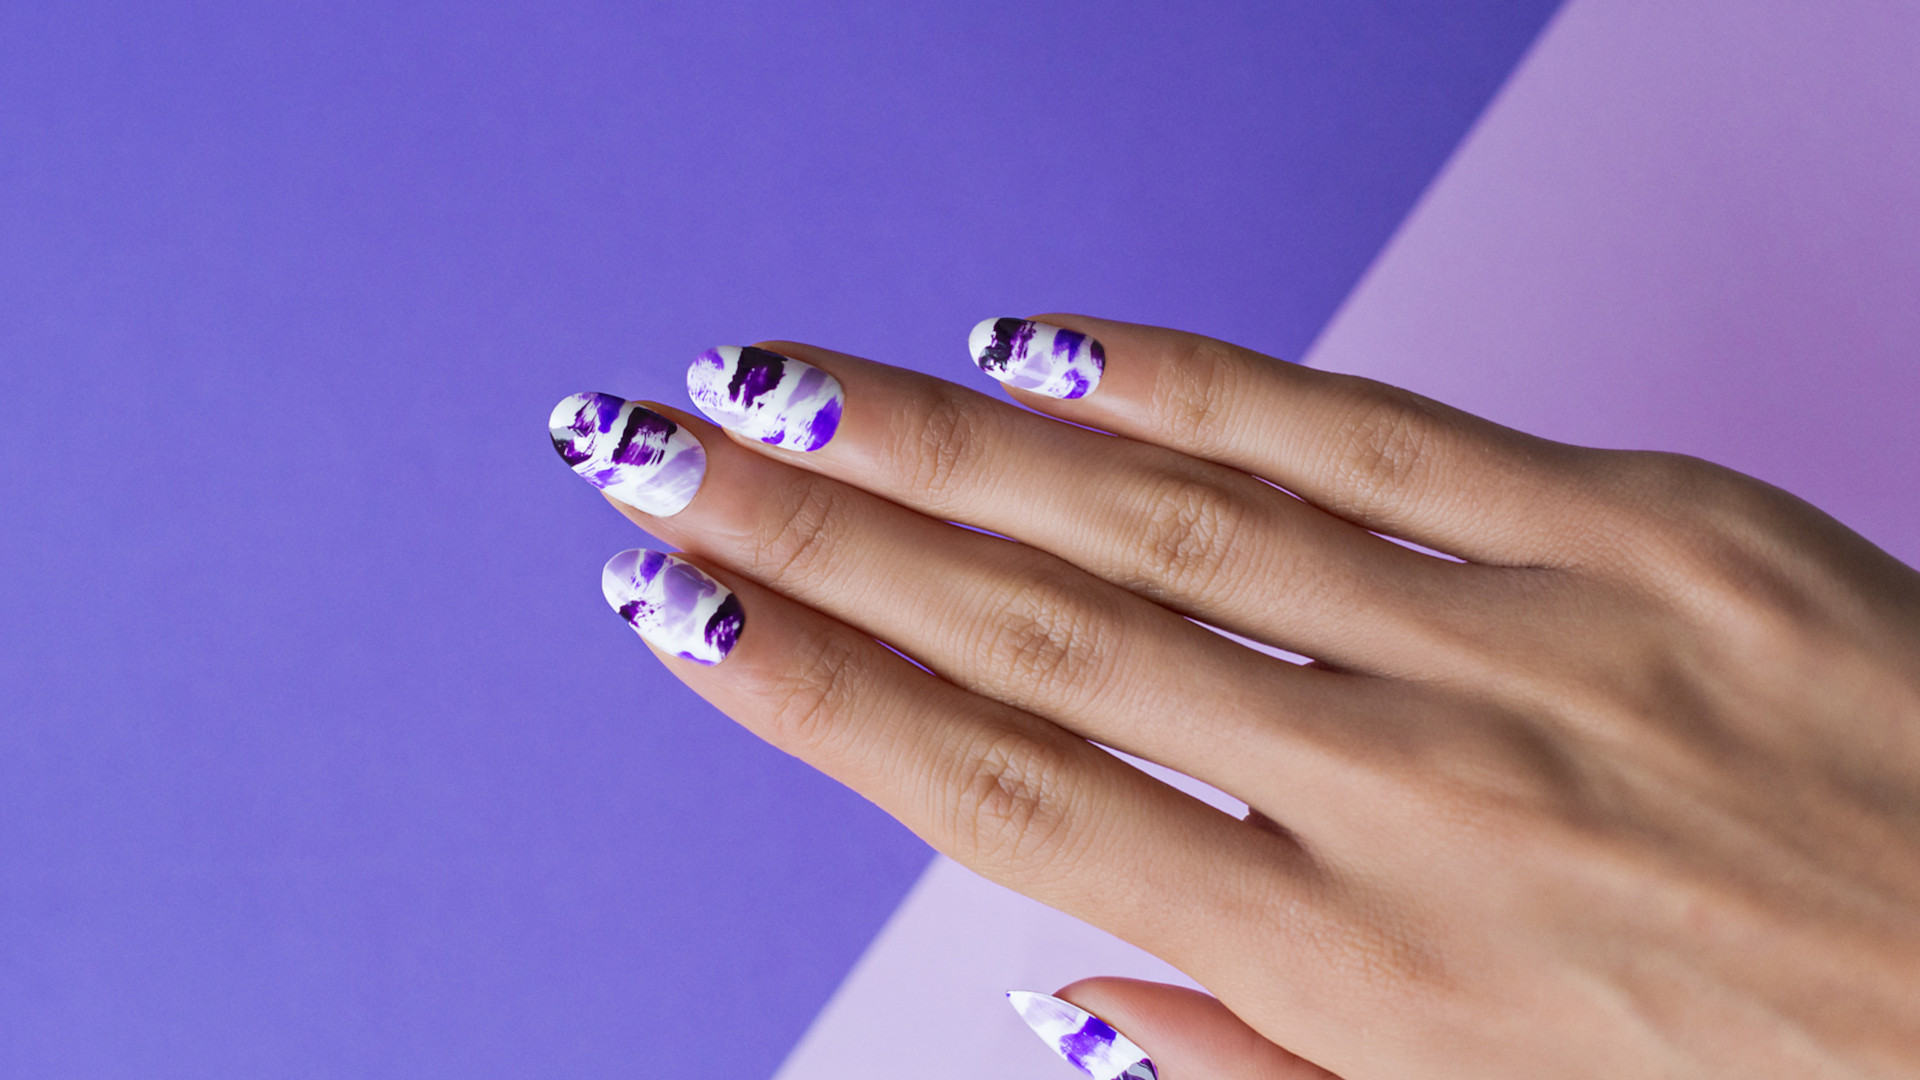 Nail Art in London - Nails by Mets